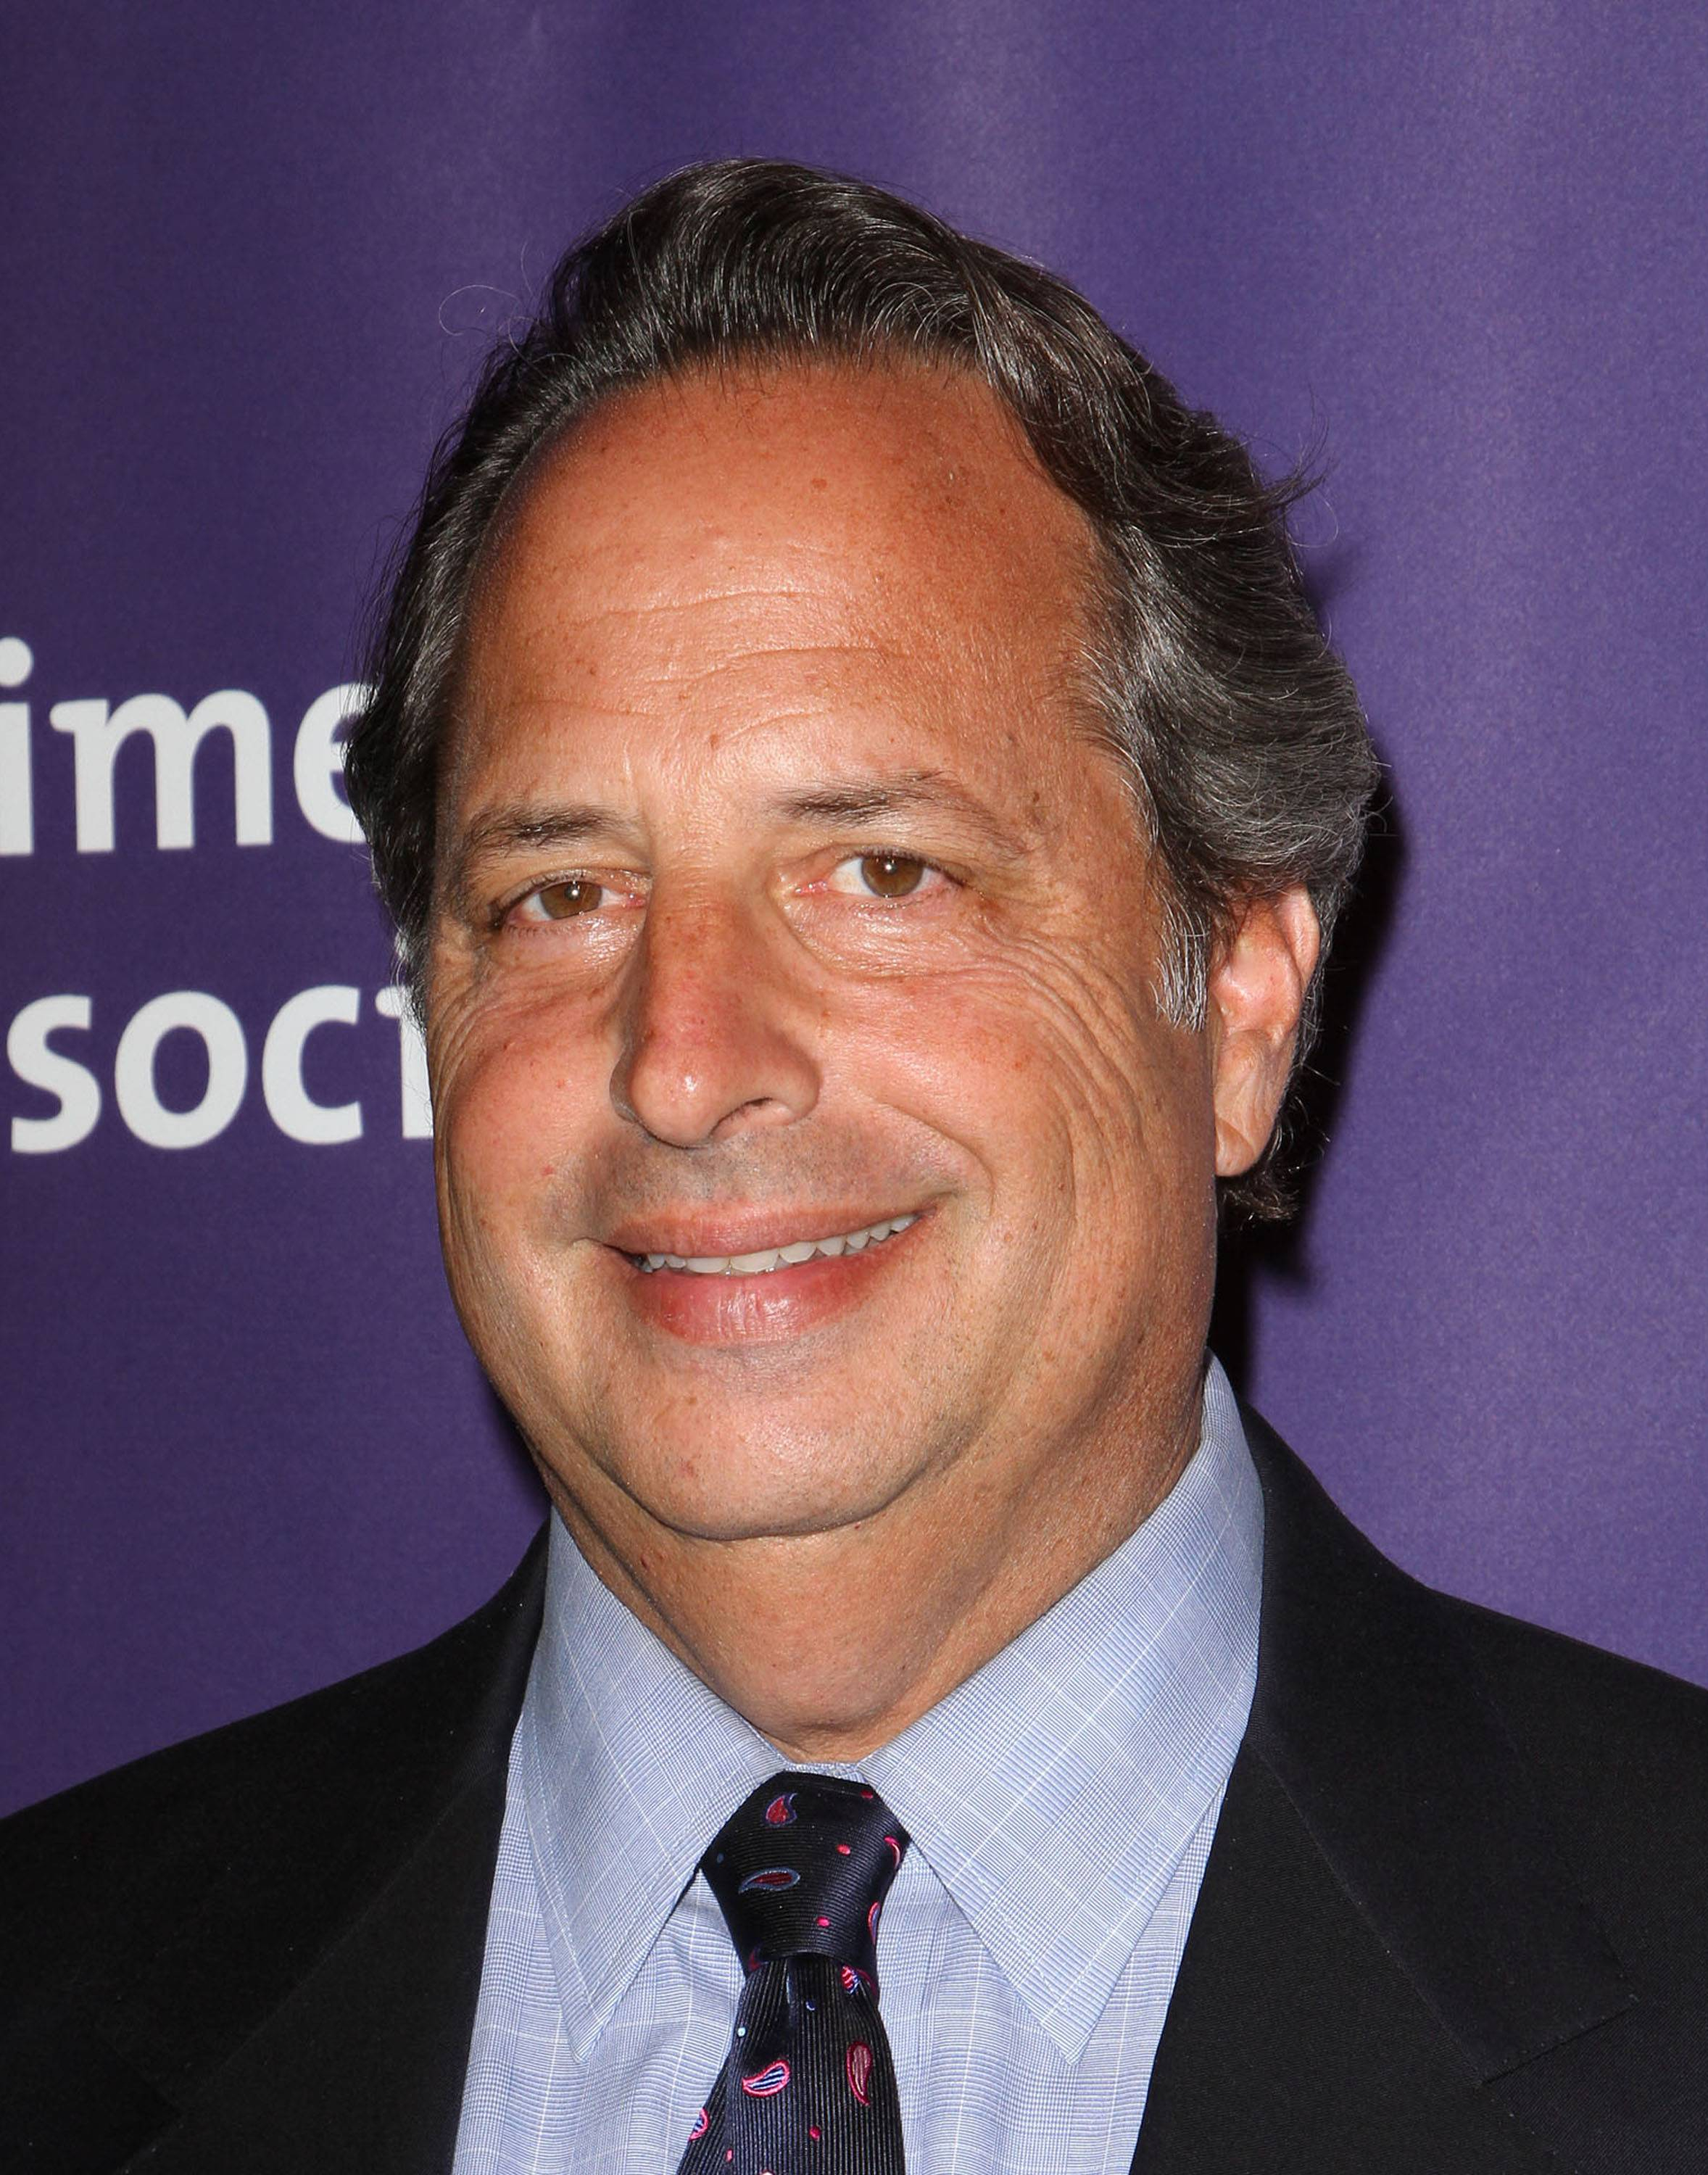 Jon Lovitz Rant on Obama Has Web Buzzing